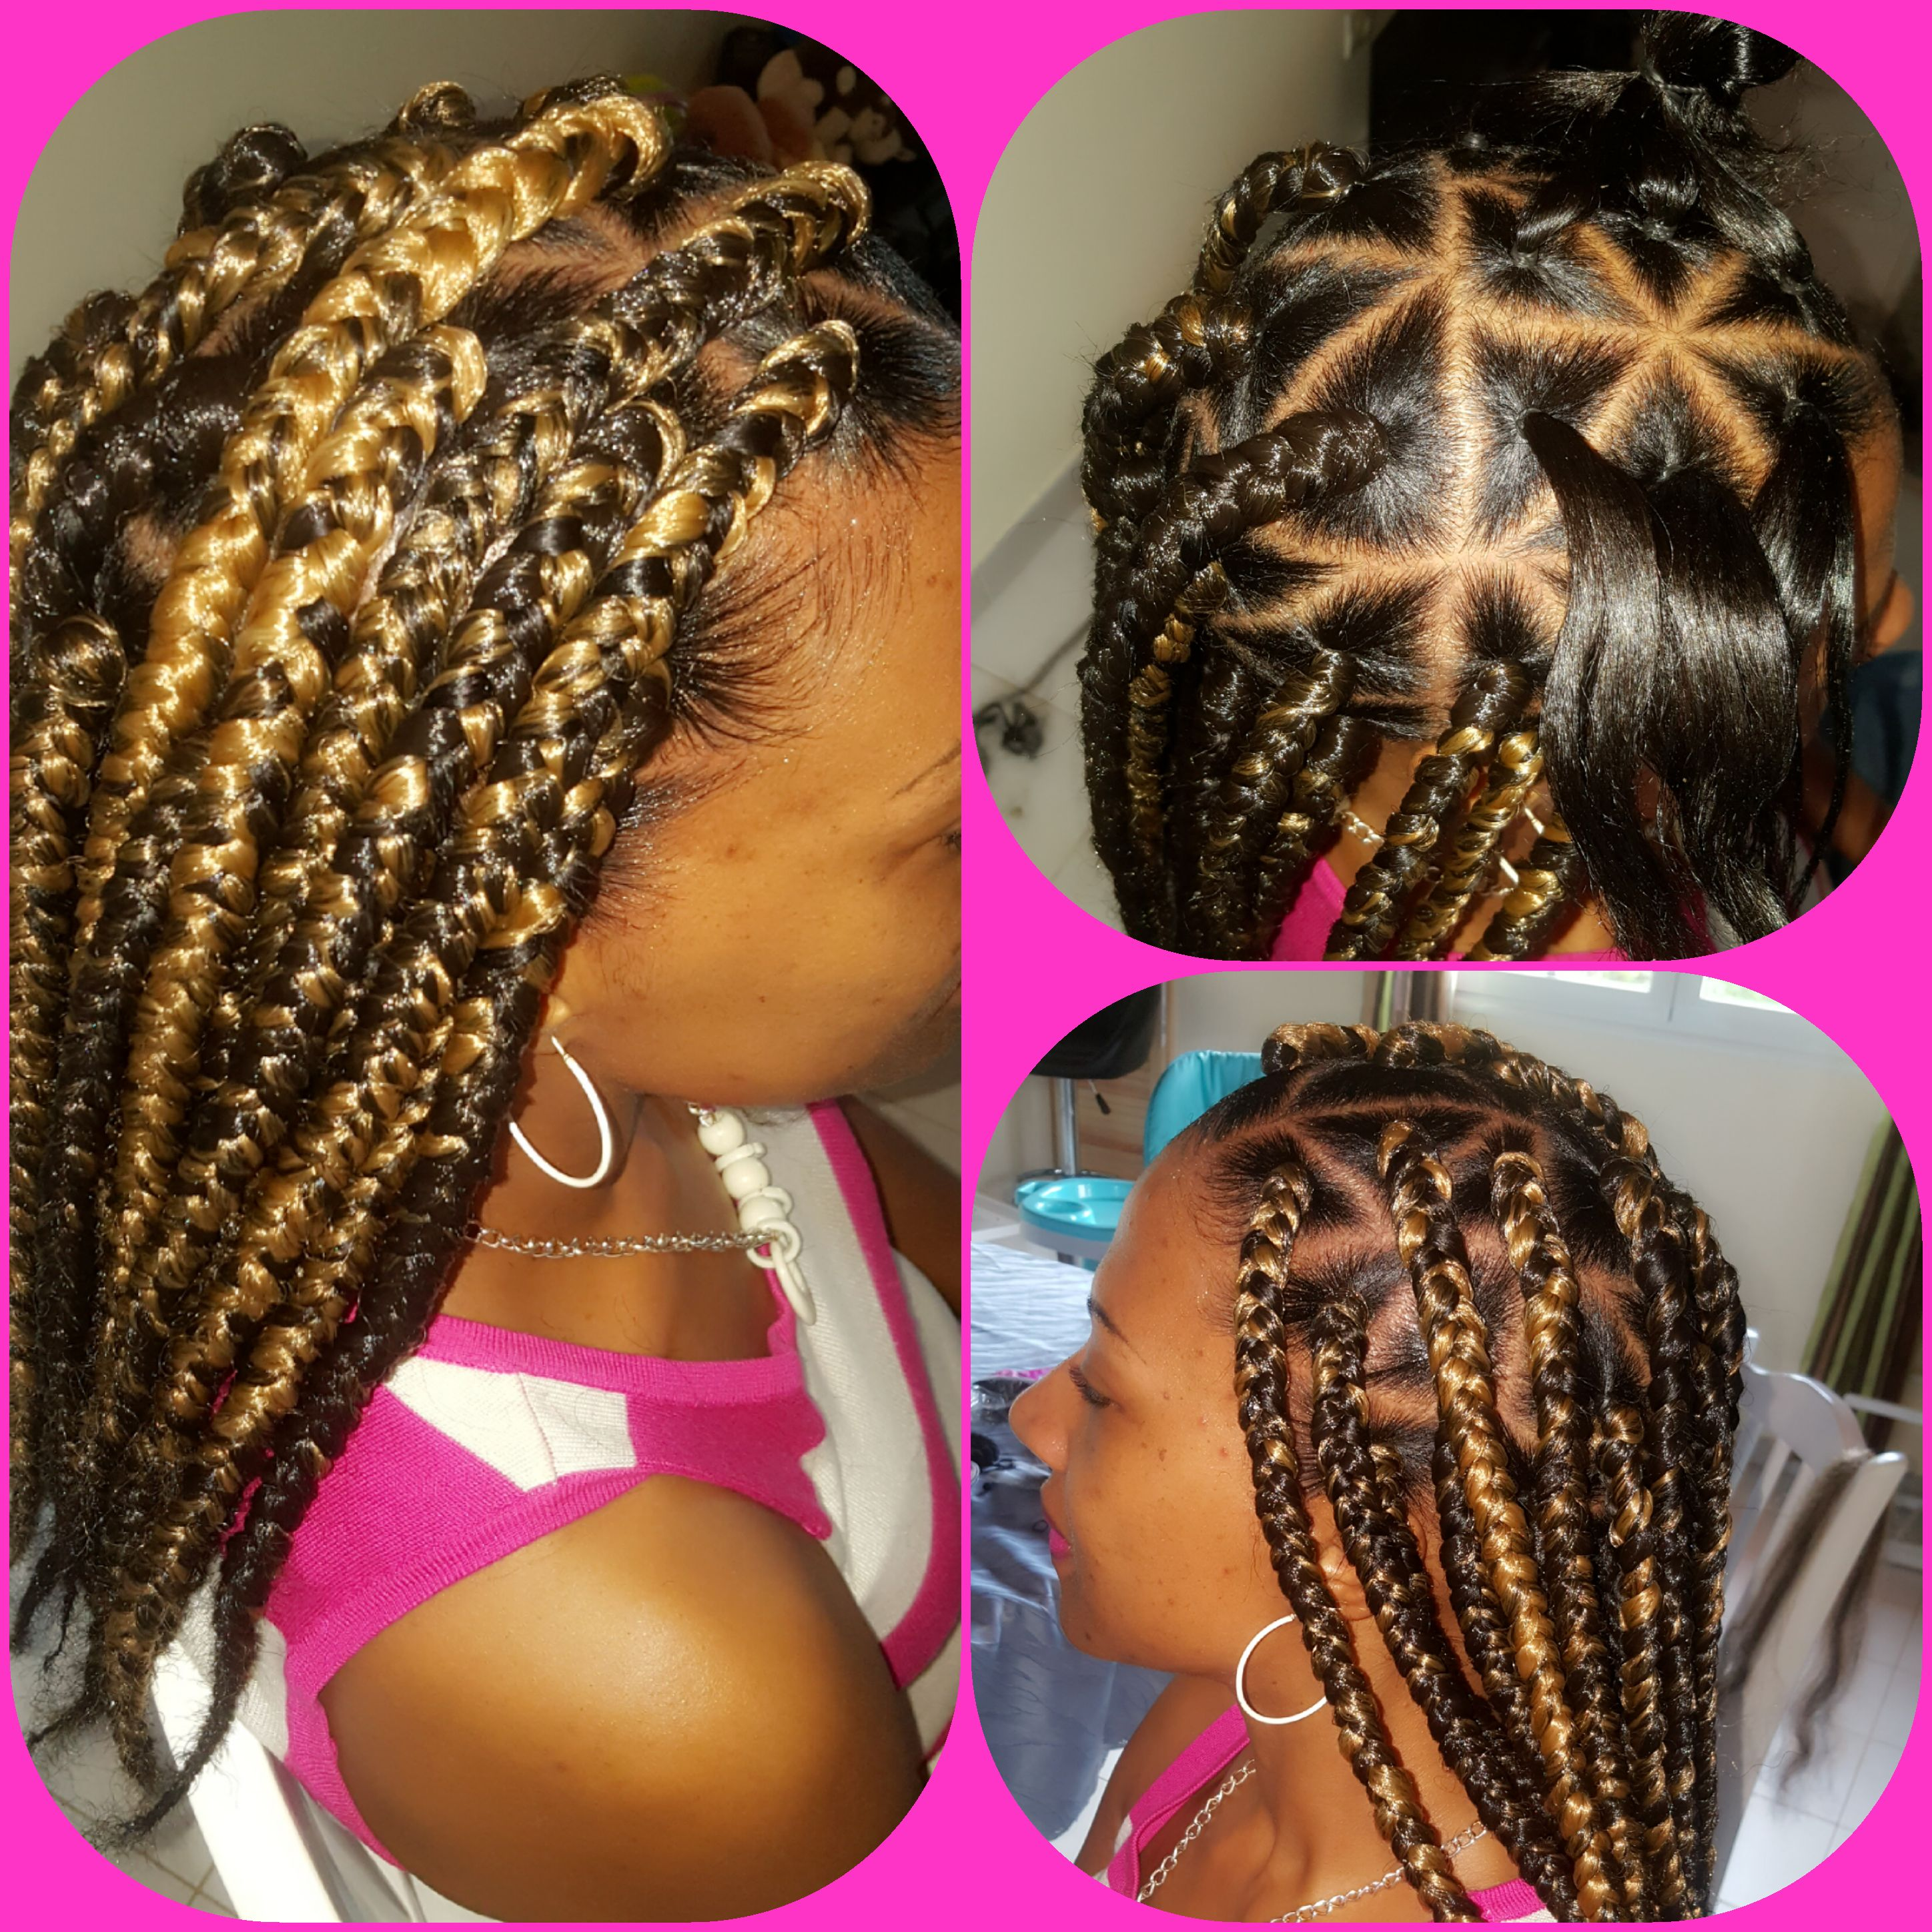 salon de coiffure afro tresse tresses box braids crochet braids vanilles tissages paris 75 77 78 91 92 93 94 95 IFFVSZOX